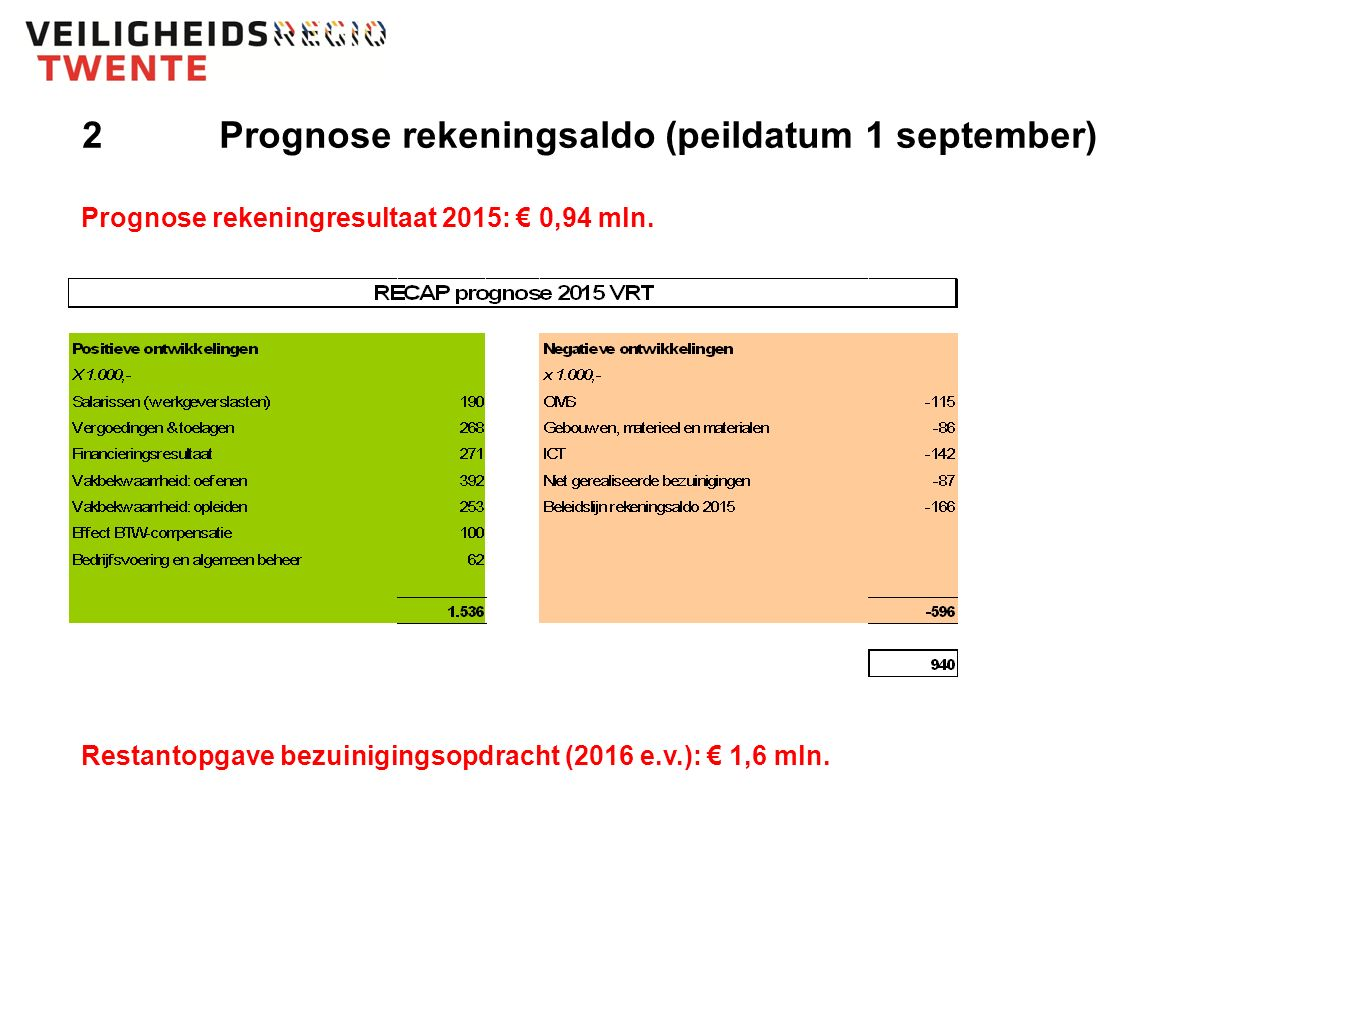 2Prognose rekeningsaldo (peildatum 1 september) Prognose rekeningresultaat 2015: € 0,94 mln.